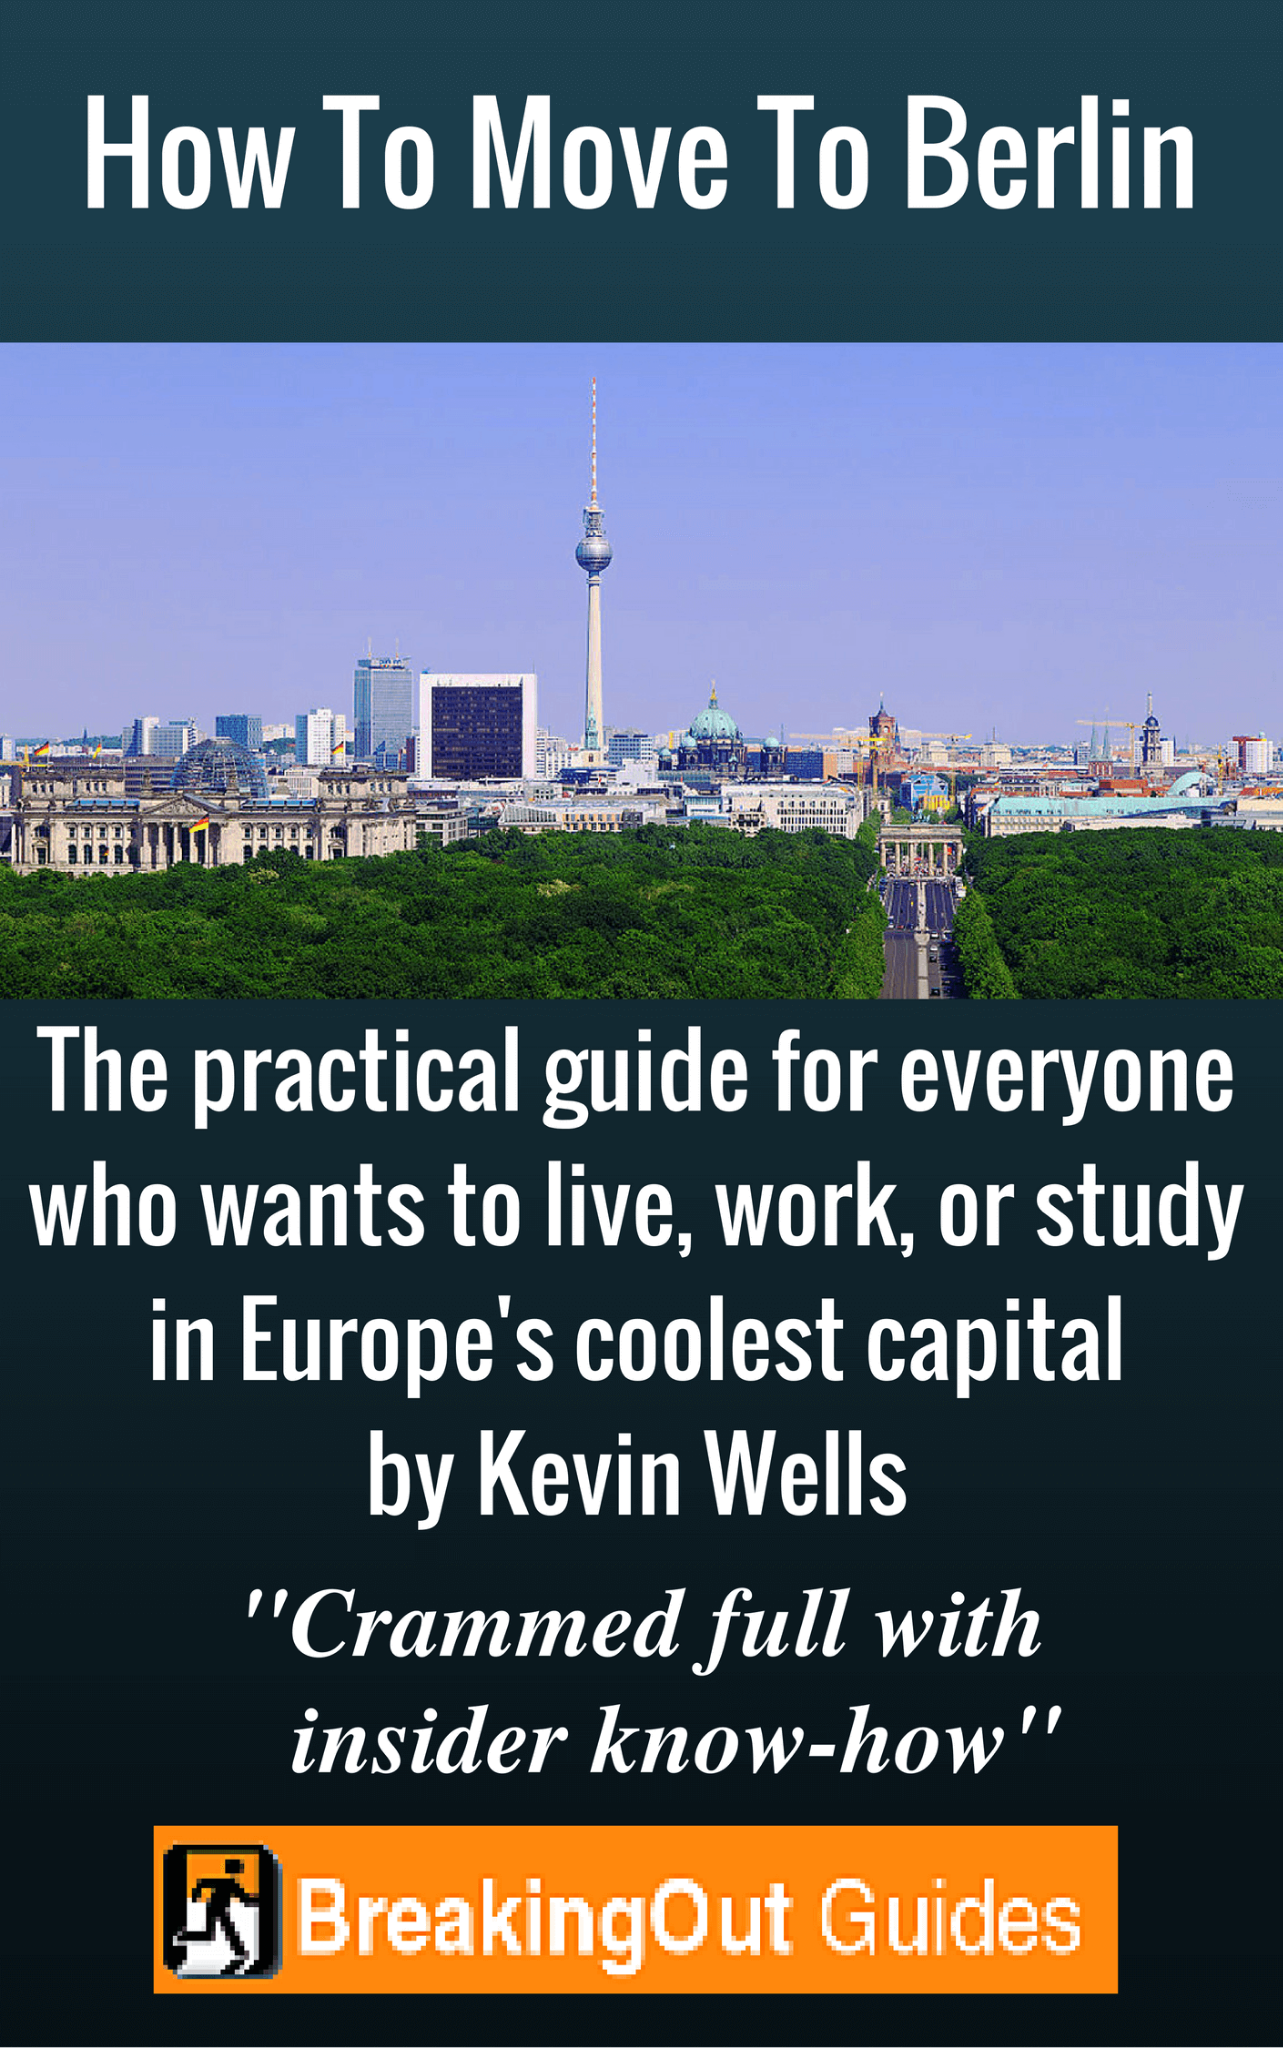 How To Move To Berlin